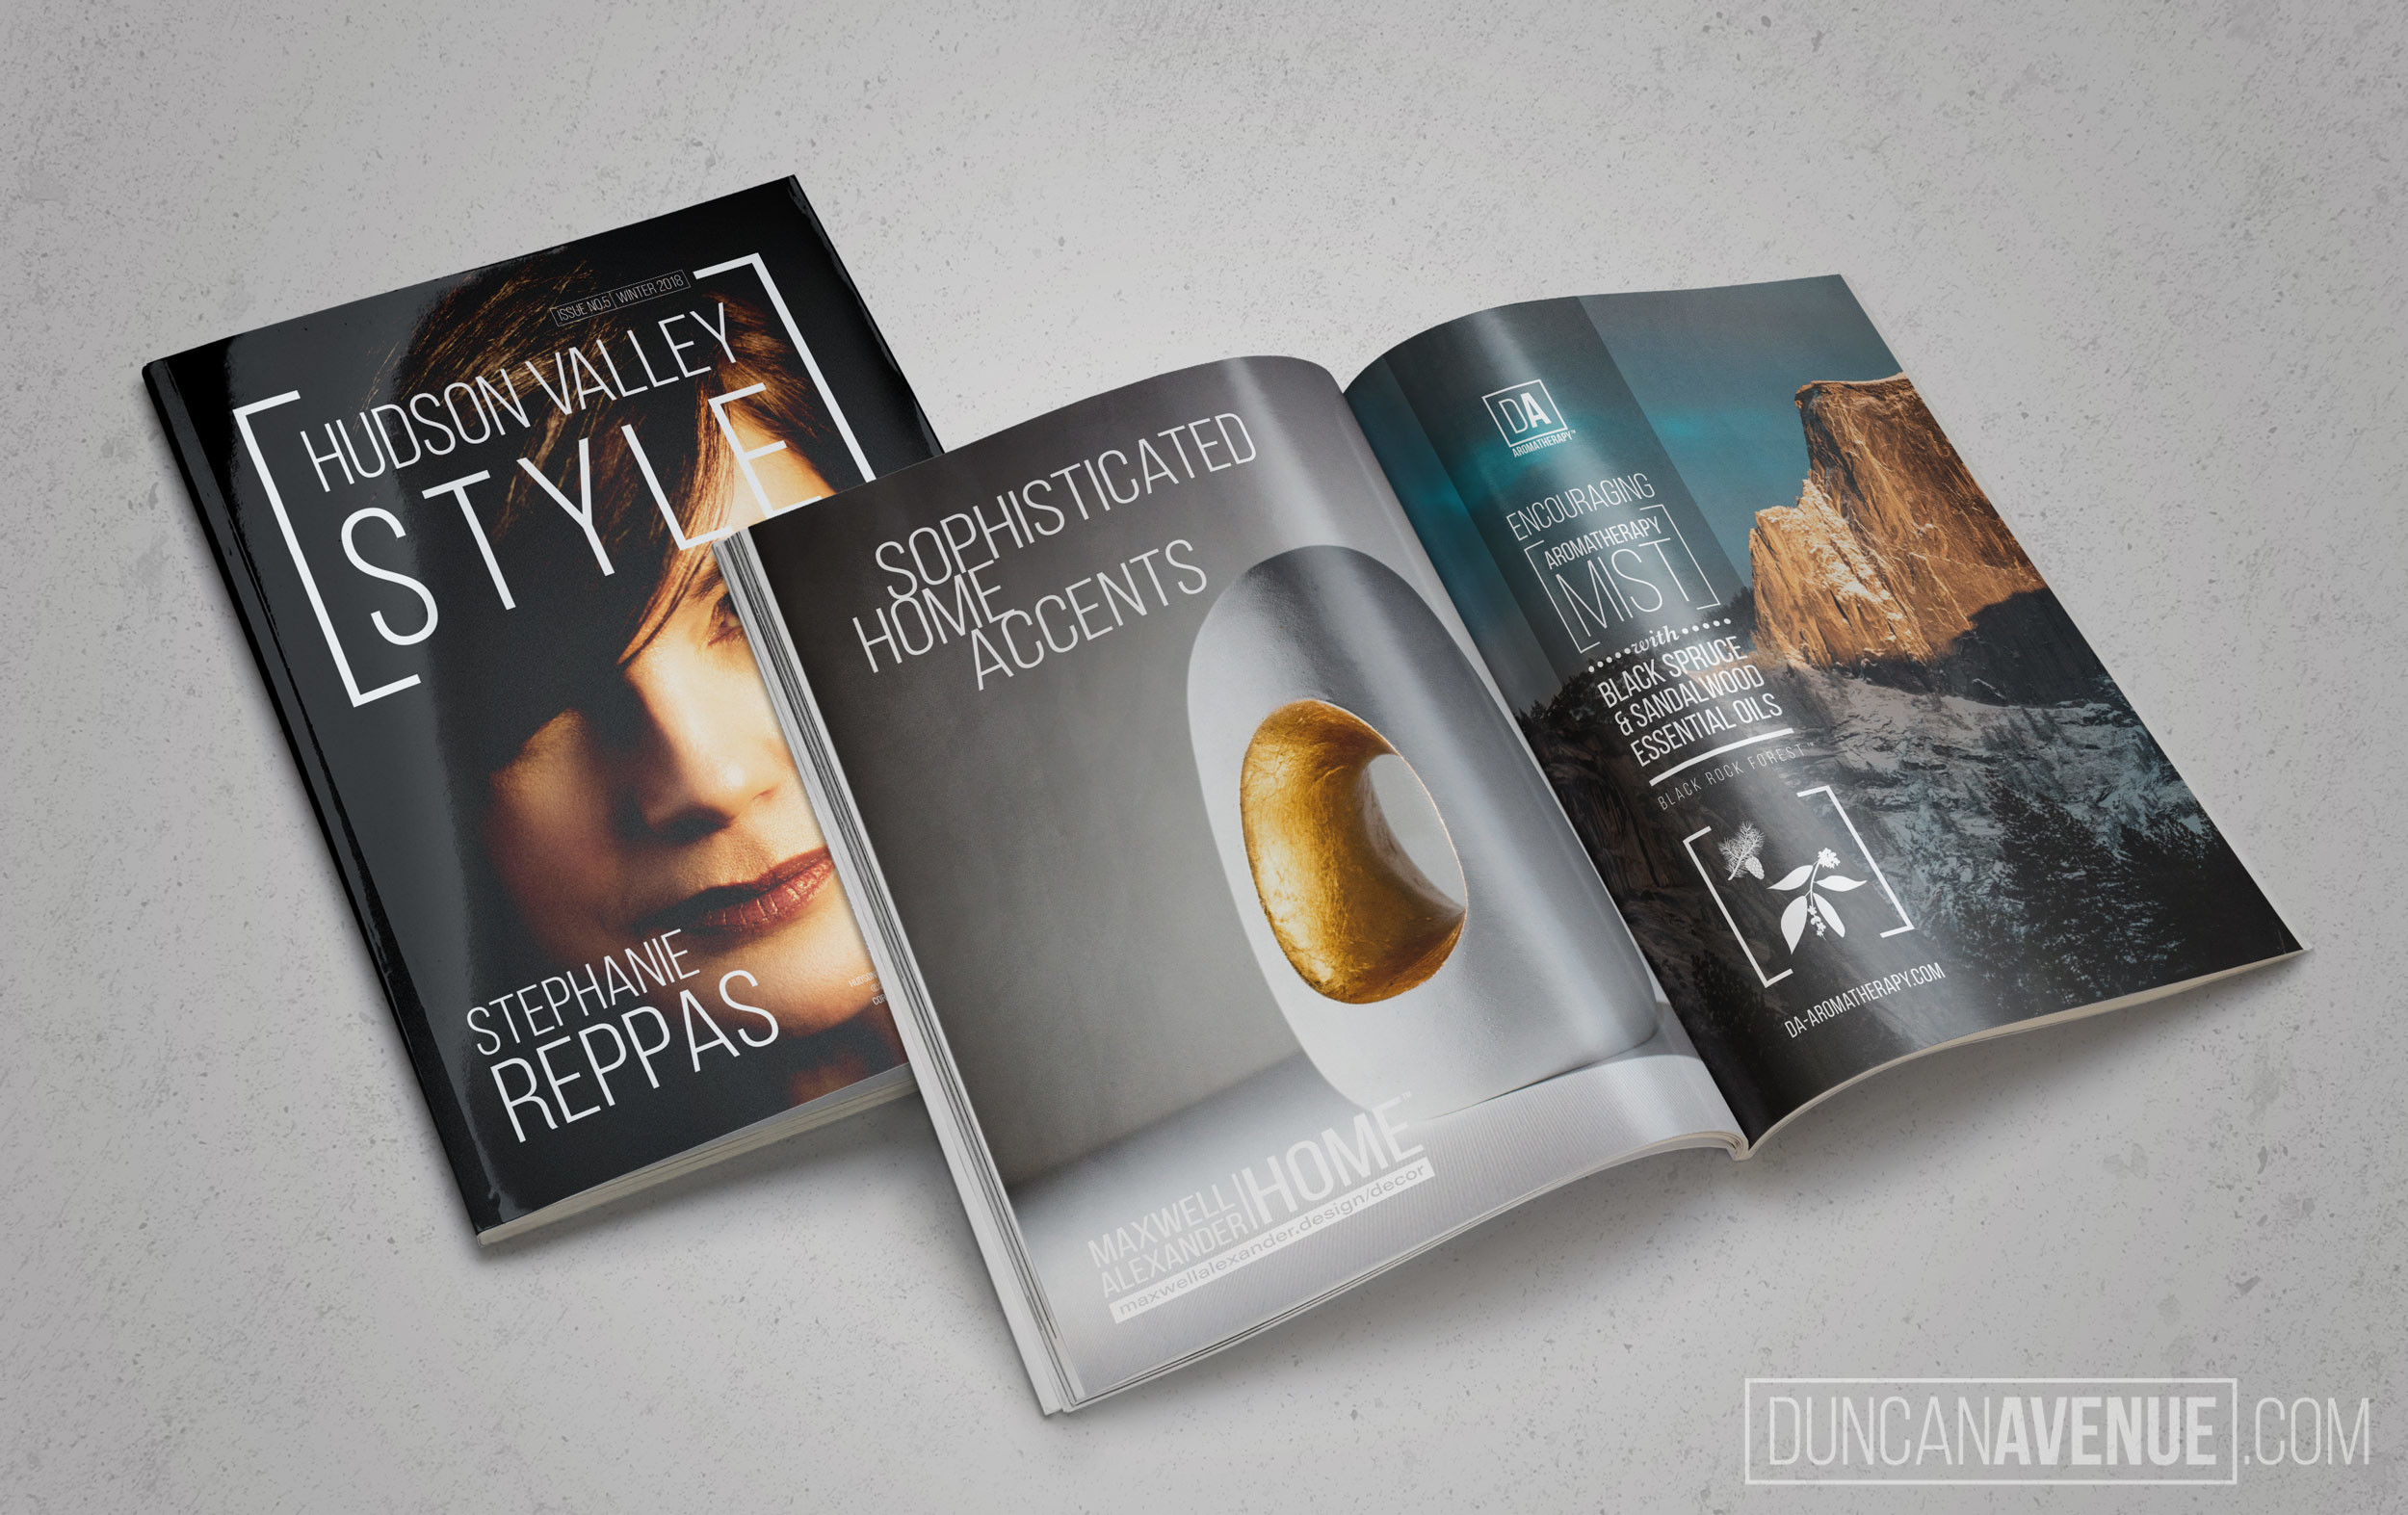 Hudson Valley Style Magazine - Issue No.5 - Stephanie Reppas - Lighting the Way